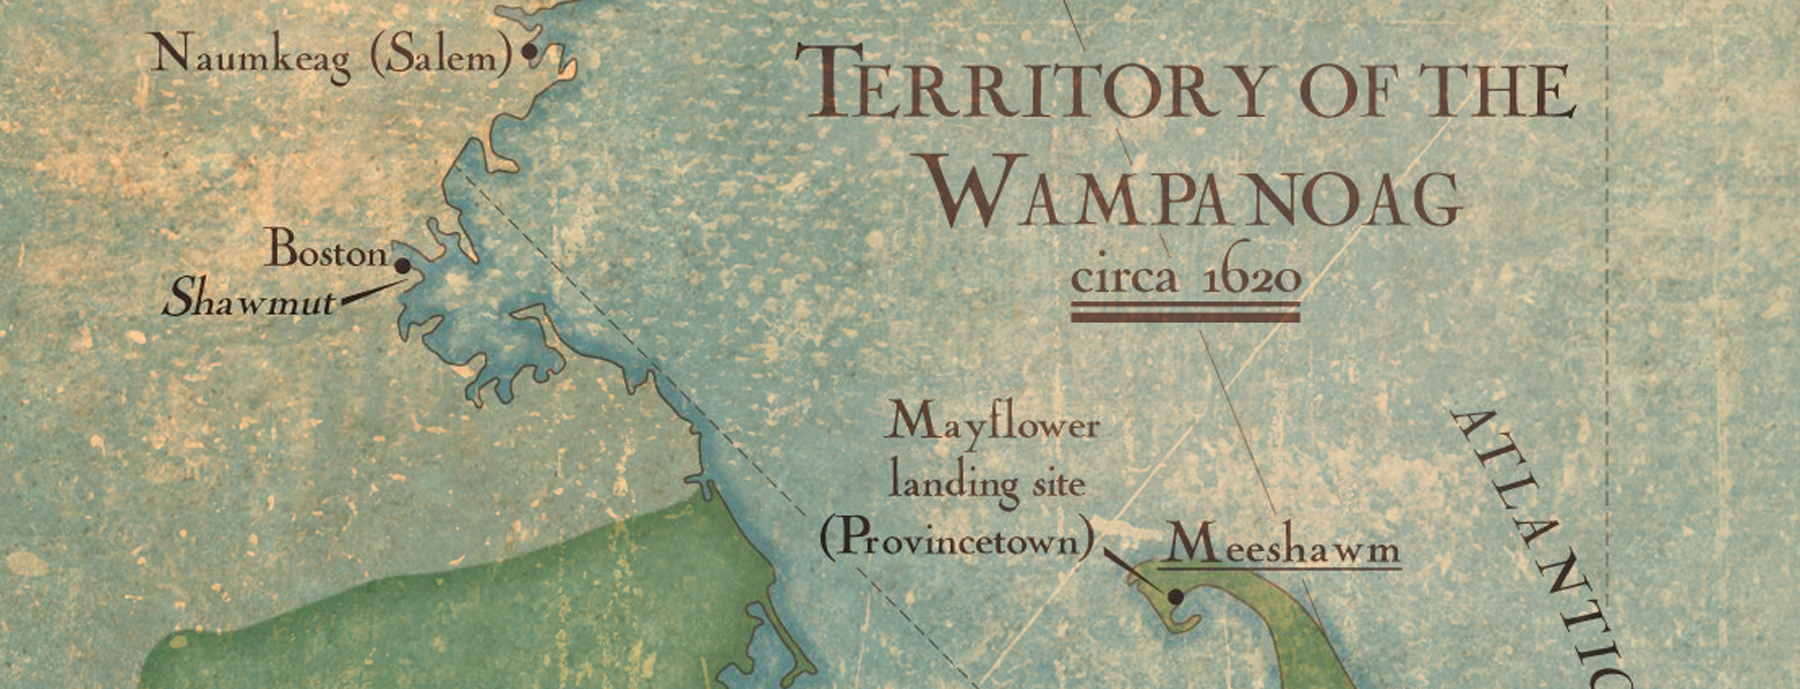 Territory of the Wampanoag Map